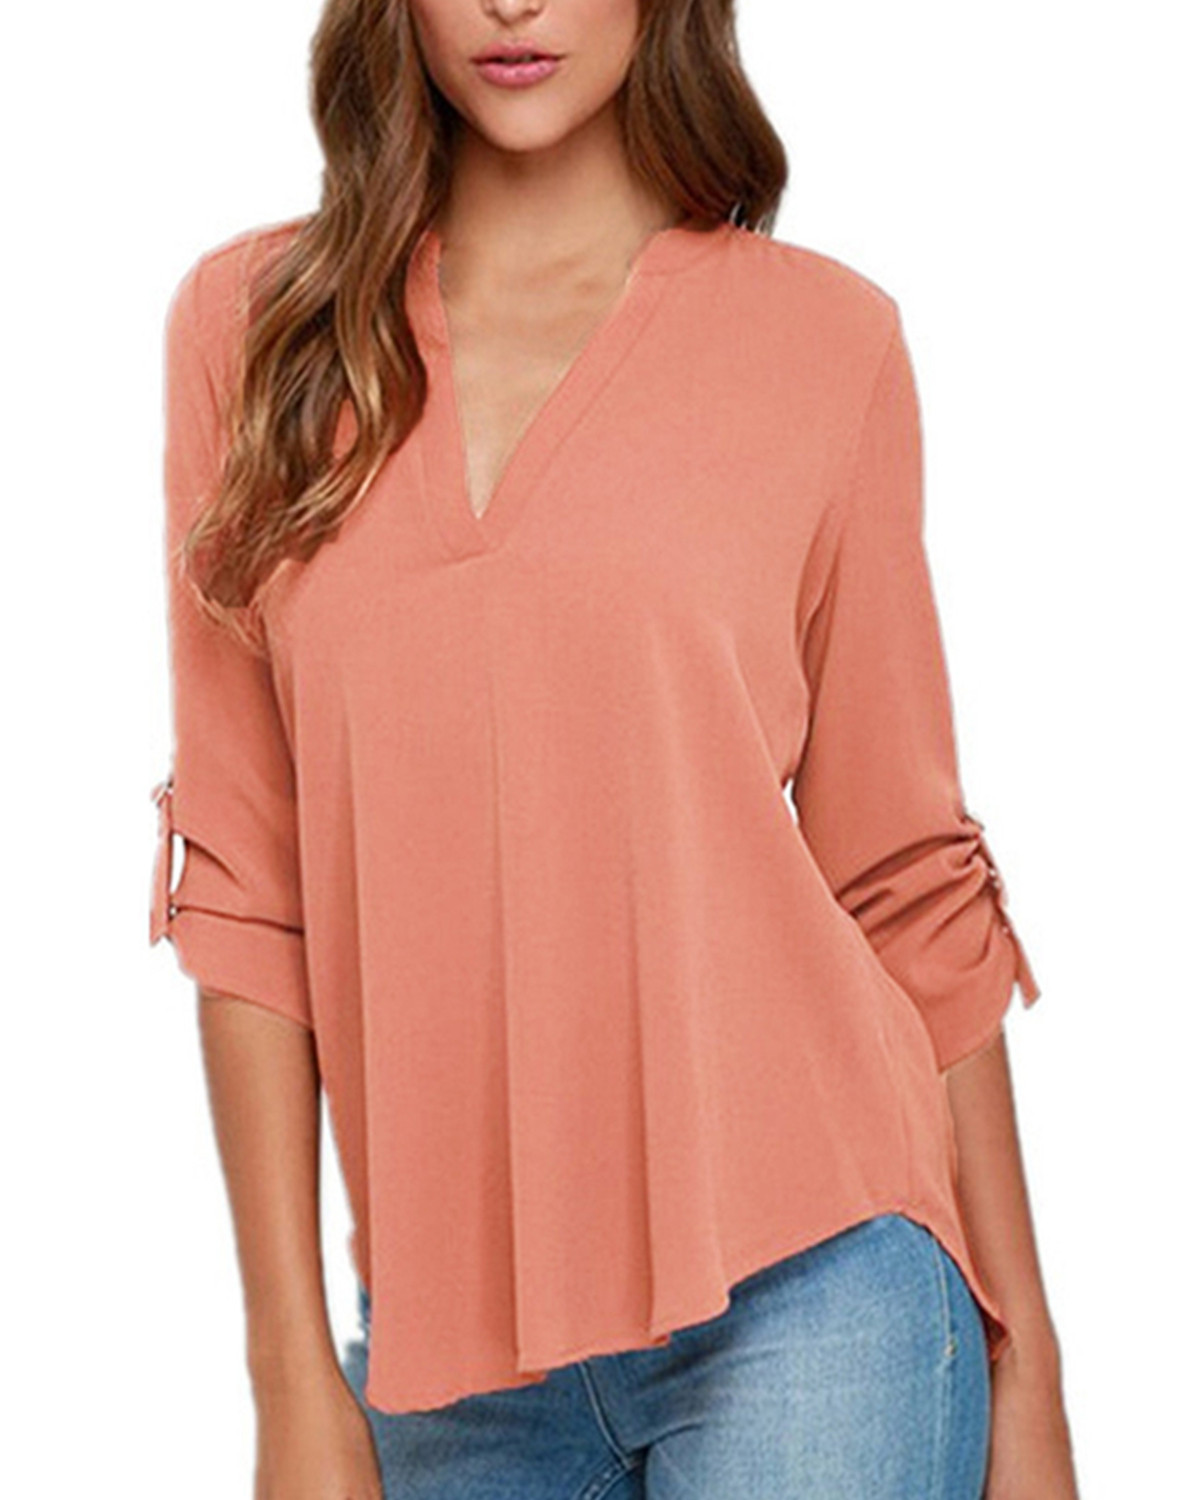 Casual Solid Blouses Shirts Women Summer Elegant Long Sleeve Sexy V Neck Tops Female Asymmetrical Blusas Femininas Plus Size 3XL